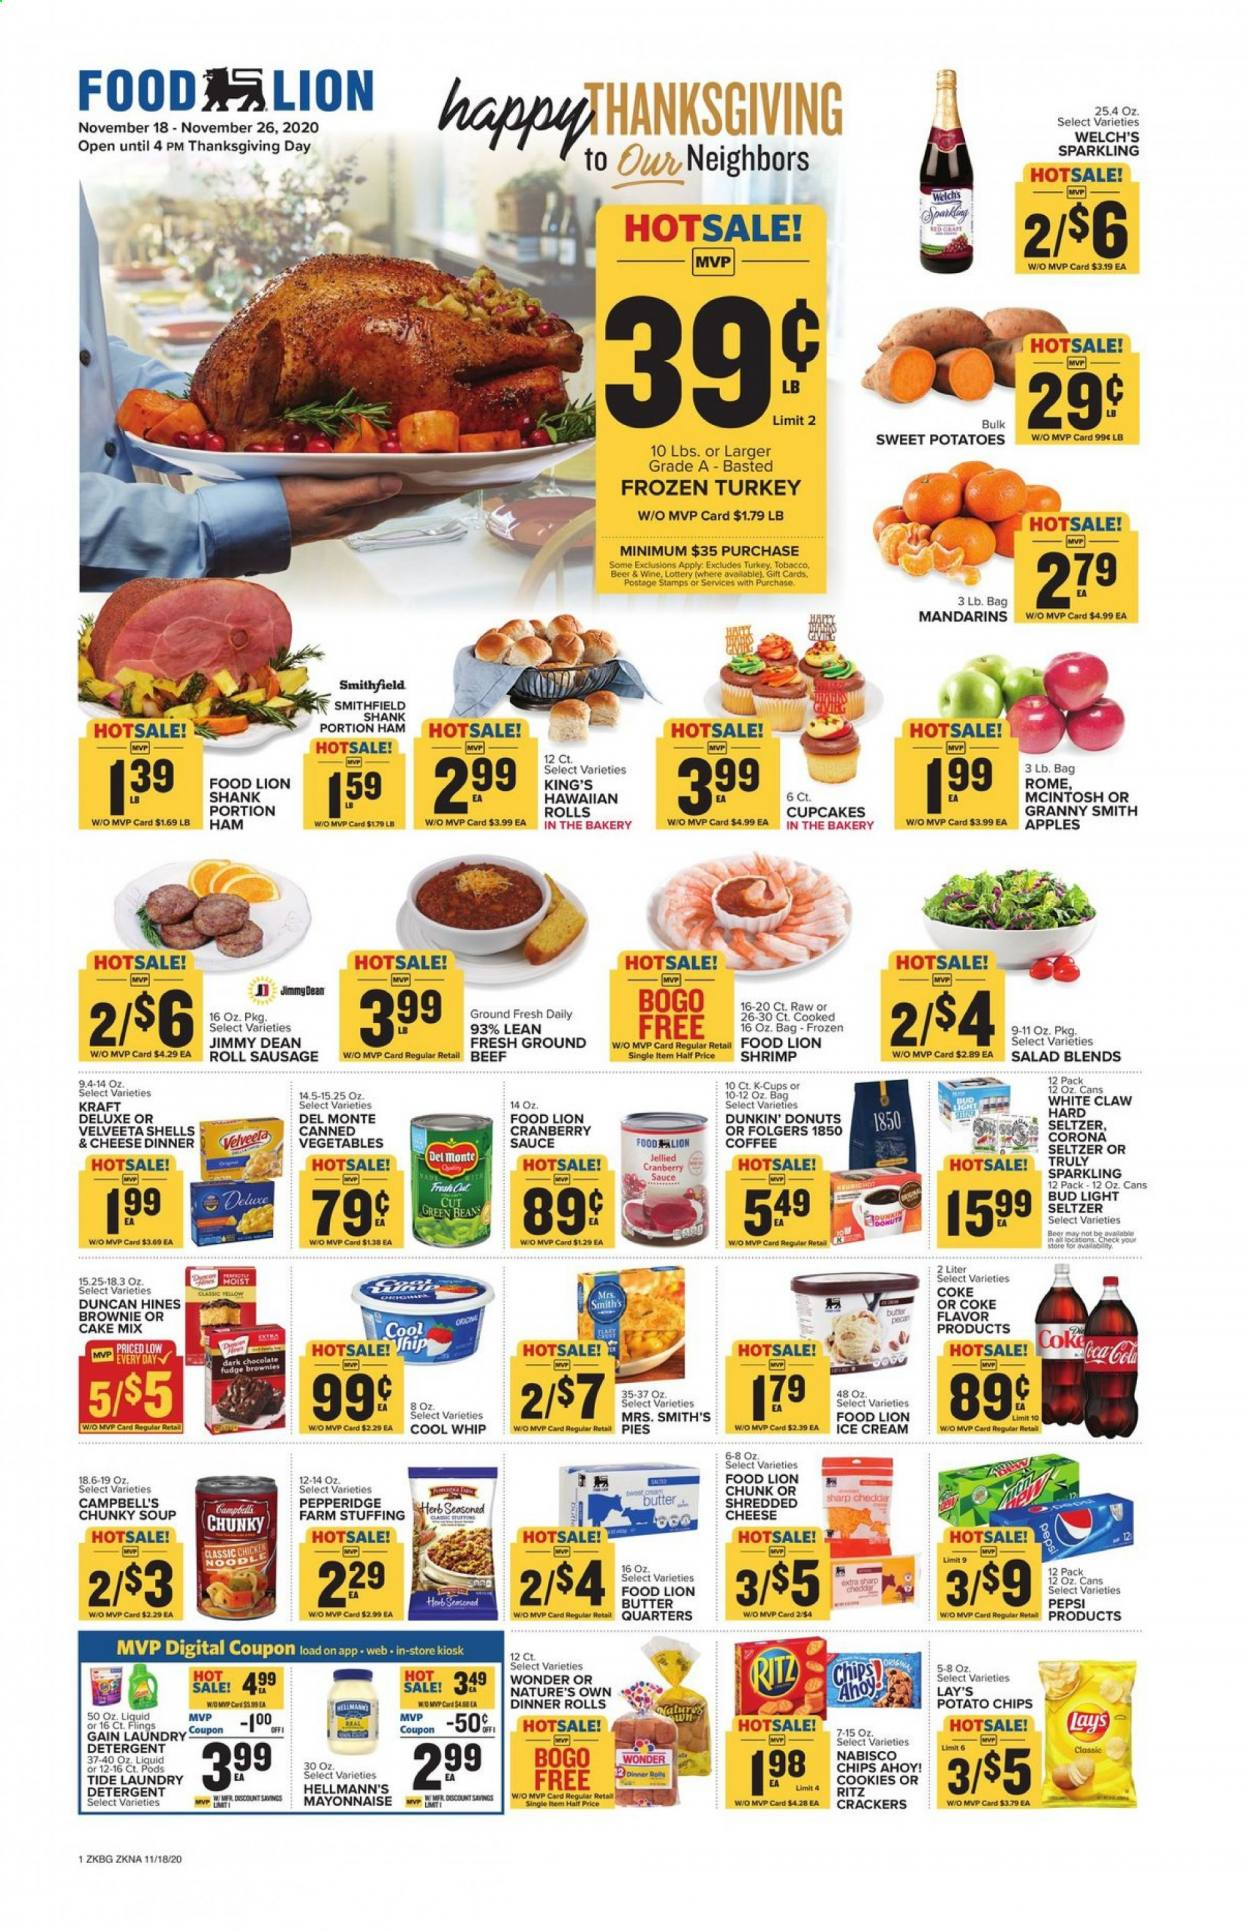 Food Lion Flyer - 11.18.2020 - 11.26.2020 - Sales products - apples, beans, beef meat, Beer, bittersweet chocolate, cake mix, Campbell's, coca-cola, coffee, cookies, Cool Whip, cranberry sauce, detergent, frozen turkey, fudge, Gain, green beans, mayonnaise, sausage, seltzer, Sharp, shredded cheese, sweet potatoes, Tide, turkey, ham, hawaiian rolls, ice cream, potato chips, potatoes, cheddar, chicken, Pepsi, noodle, chips, chocolate, cheese, cake, soup, canned vegetables, Vegetables, Bud Light, Lay's, wine, salad, herb, sauce, corona, brownie, laundry detergent, Folgers, cool, Apple, shrimps, donut, vegetable. Page 1.